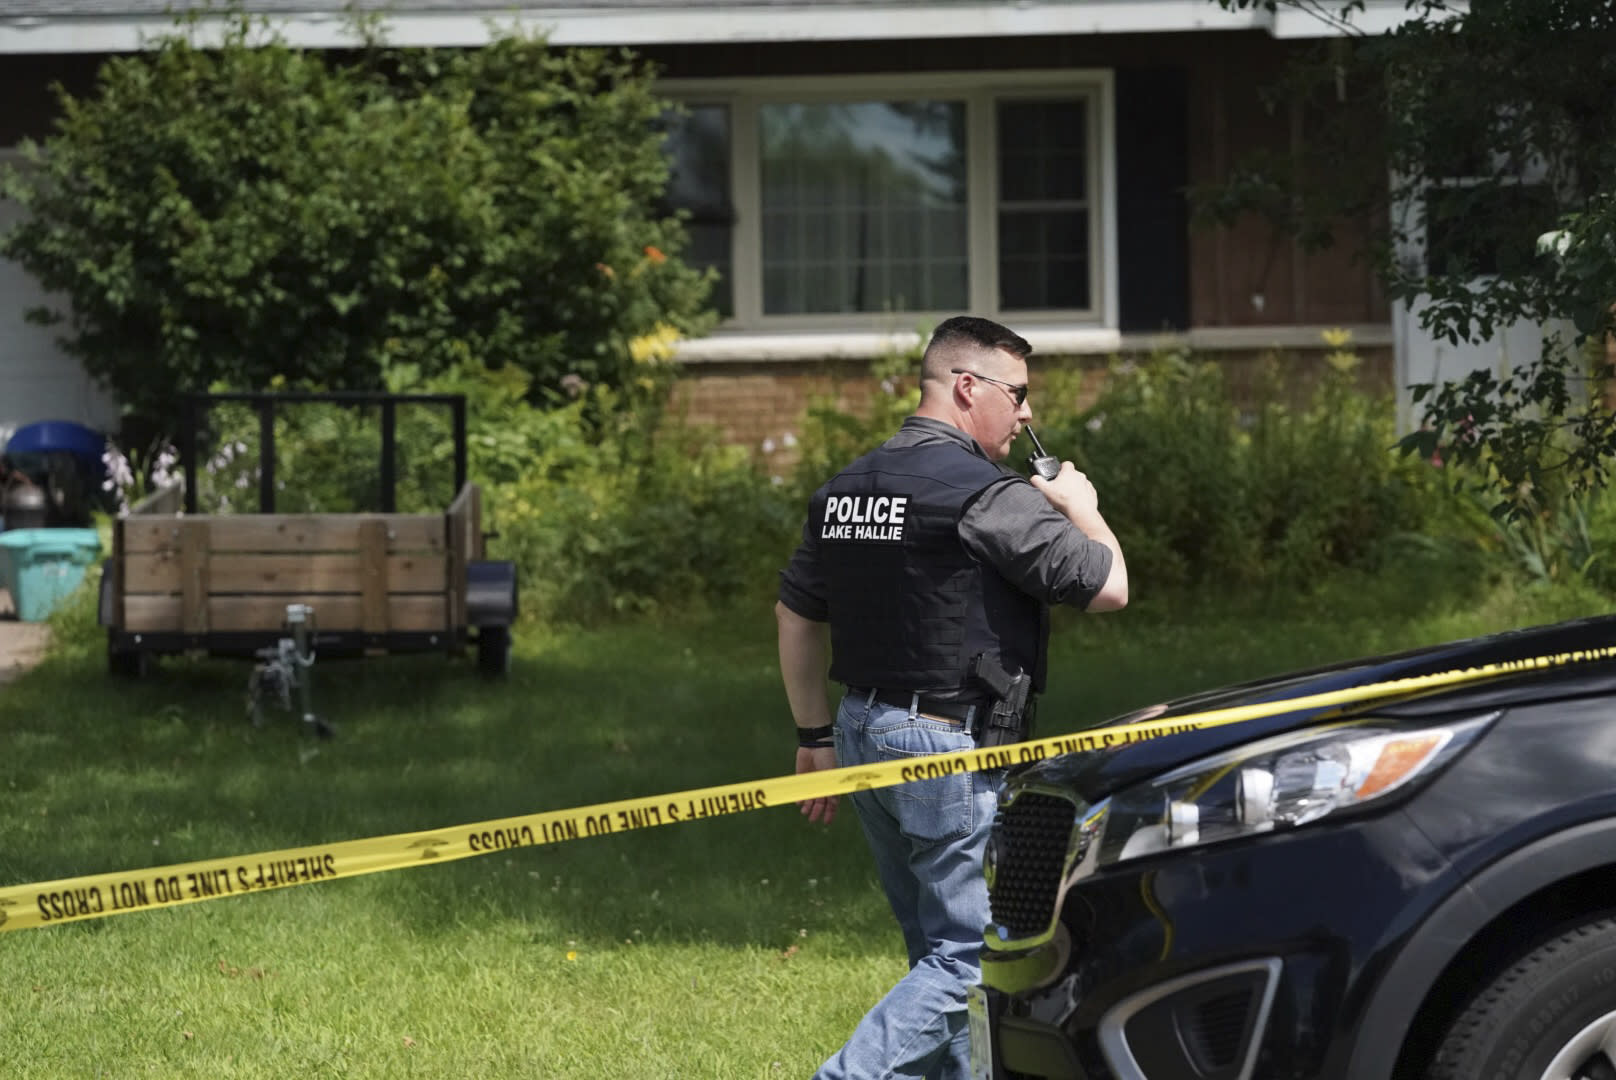 5 dead, 2 injured in residential shootings in Wisconsin